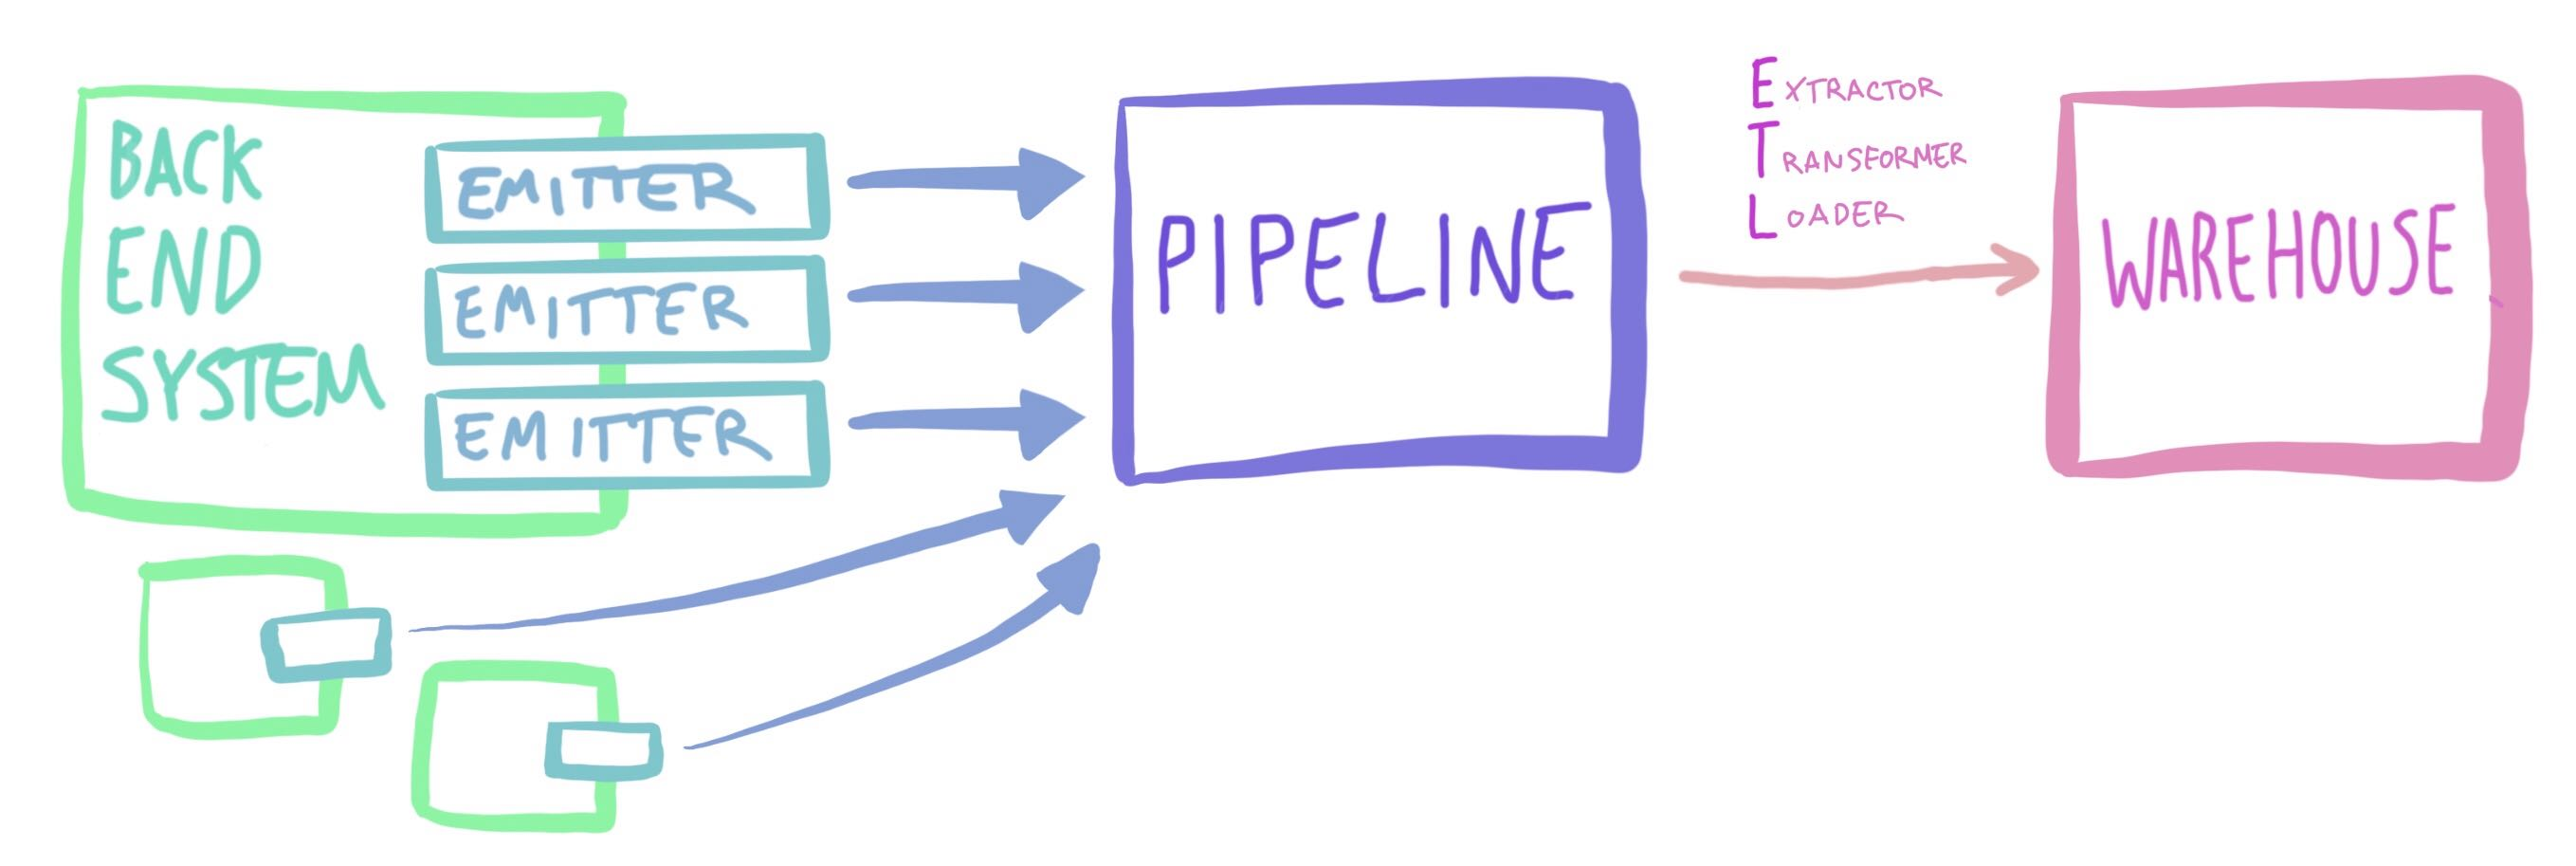 Back end systems emit to the pipeline, then the ETL process moves that data into the warehouse.